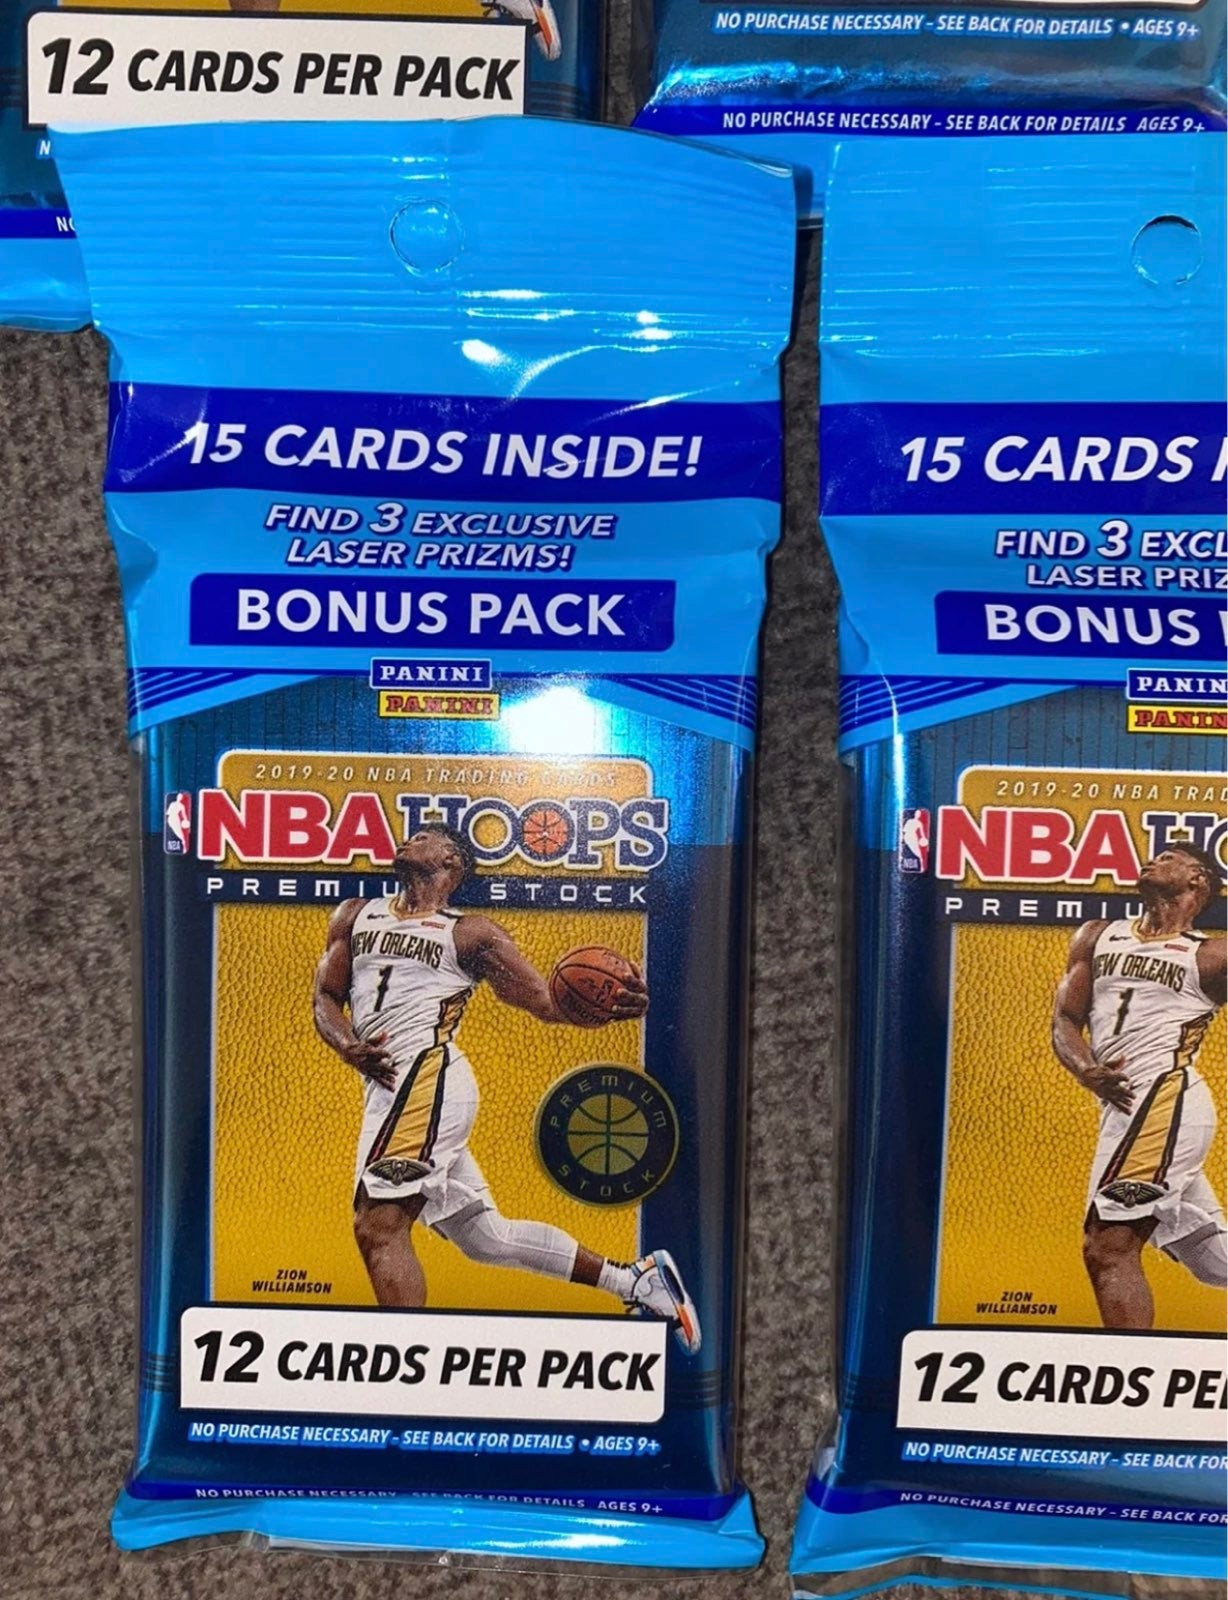 Panini NBA Hoops Premium Stock Cards